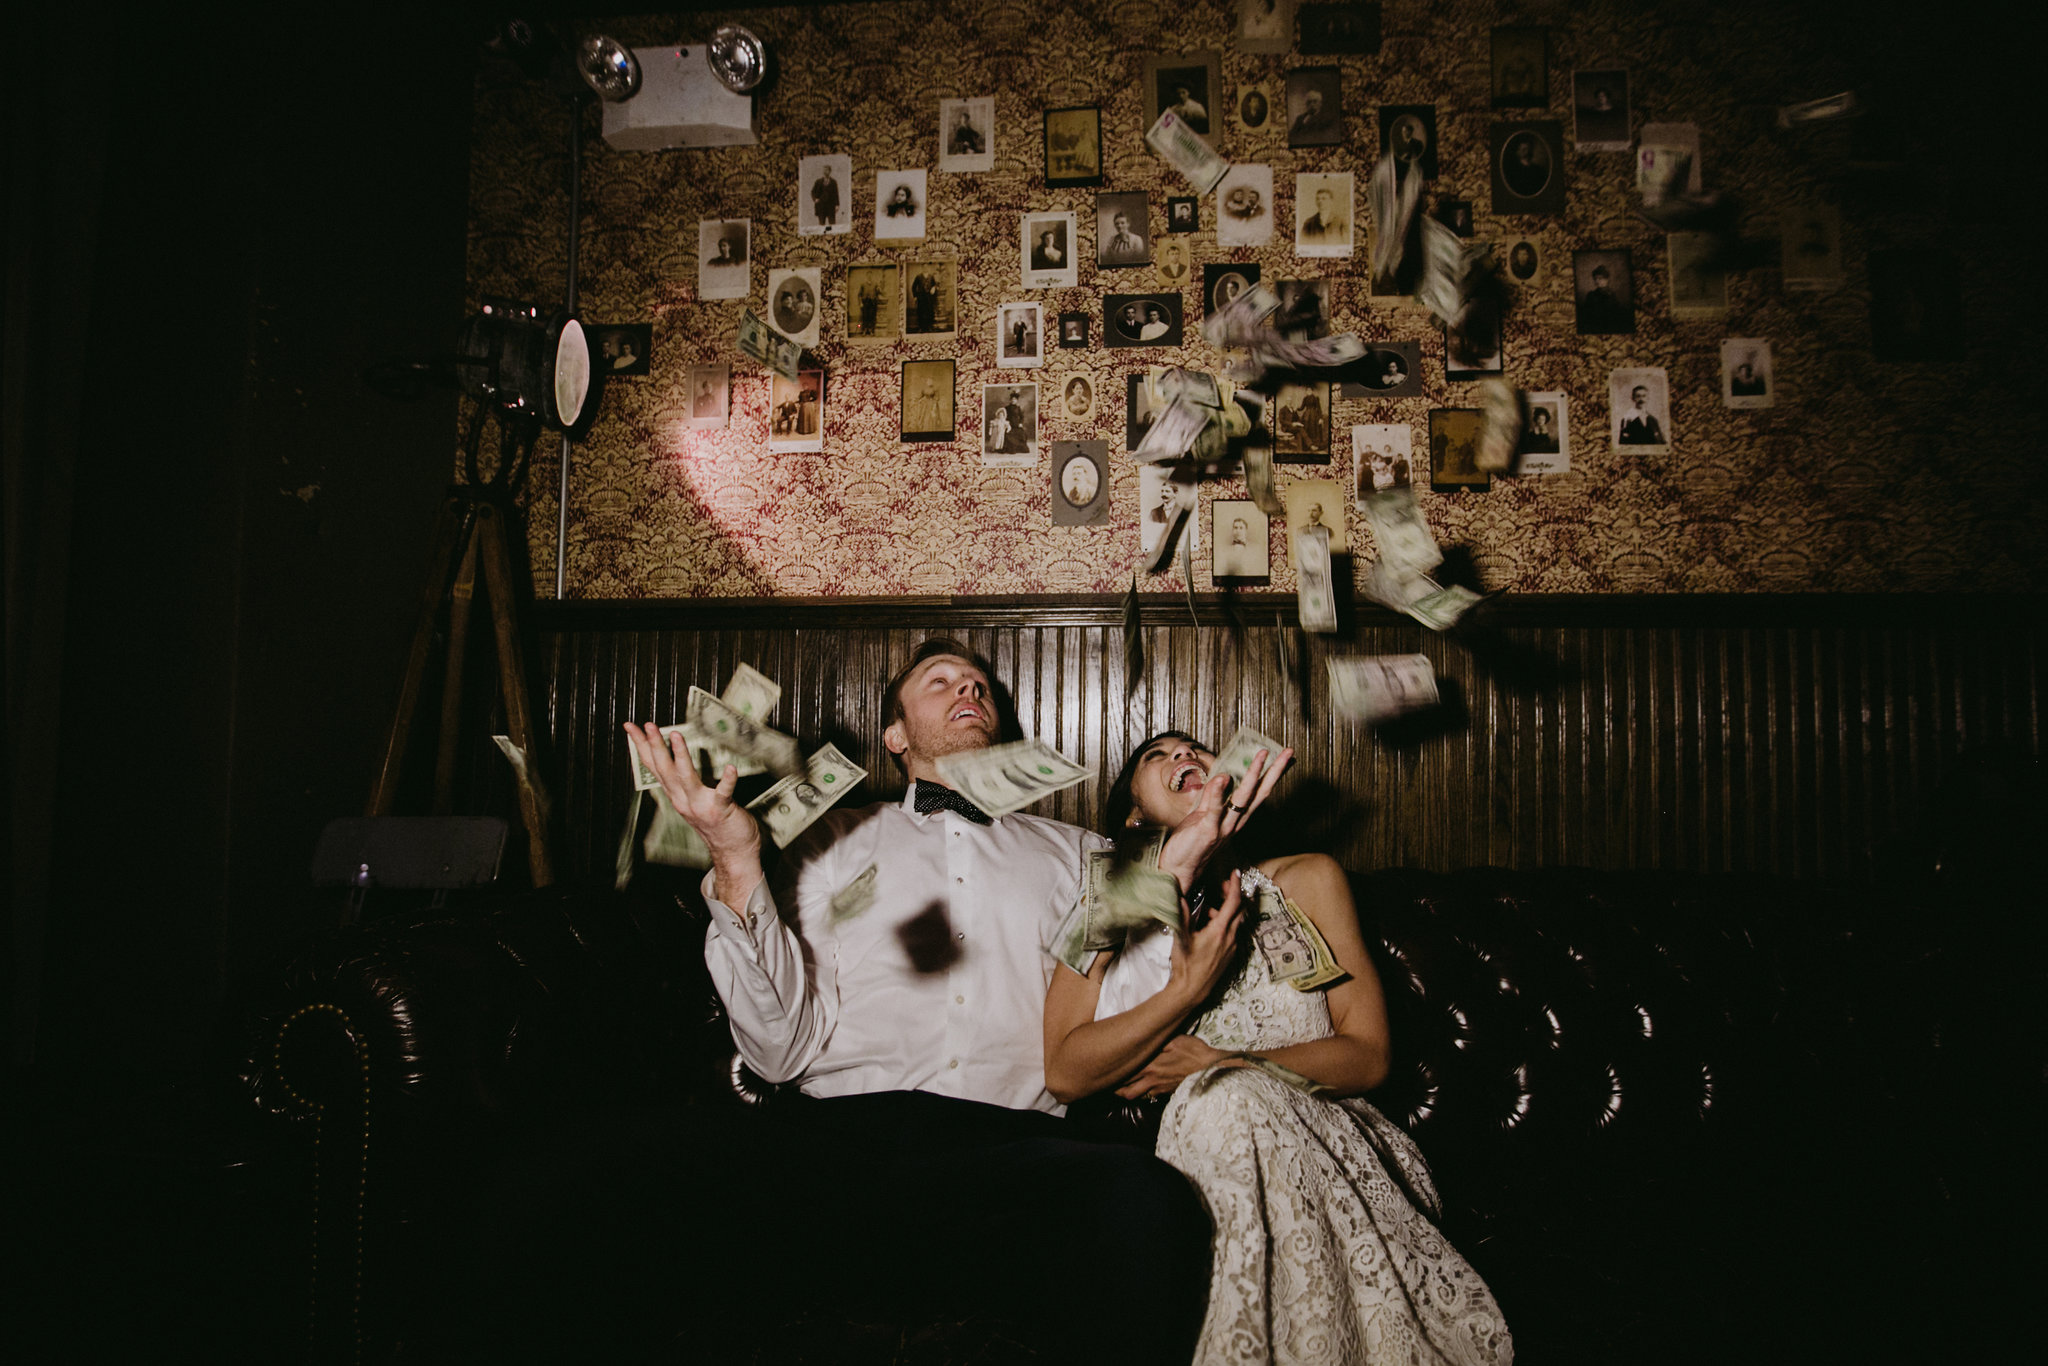 Brooklyn_Winery_Wedding_Chellise_Michael_Photography1103.JPG